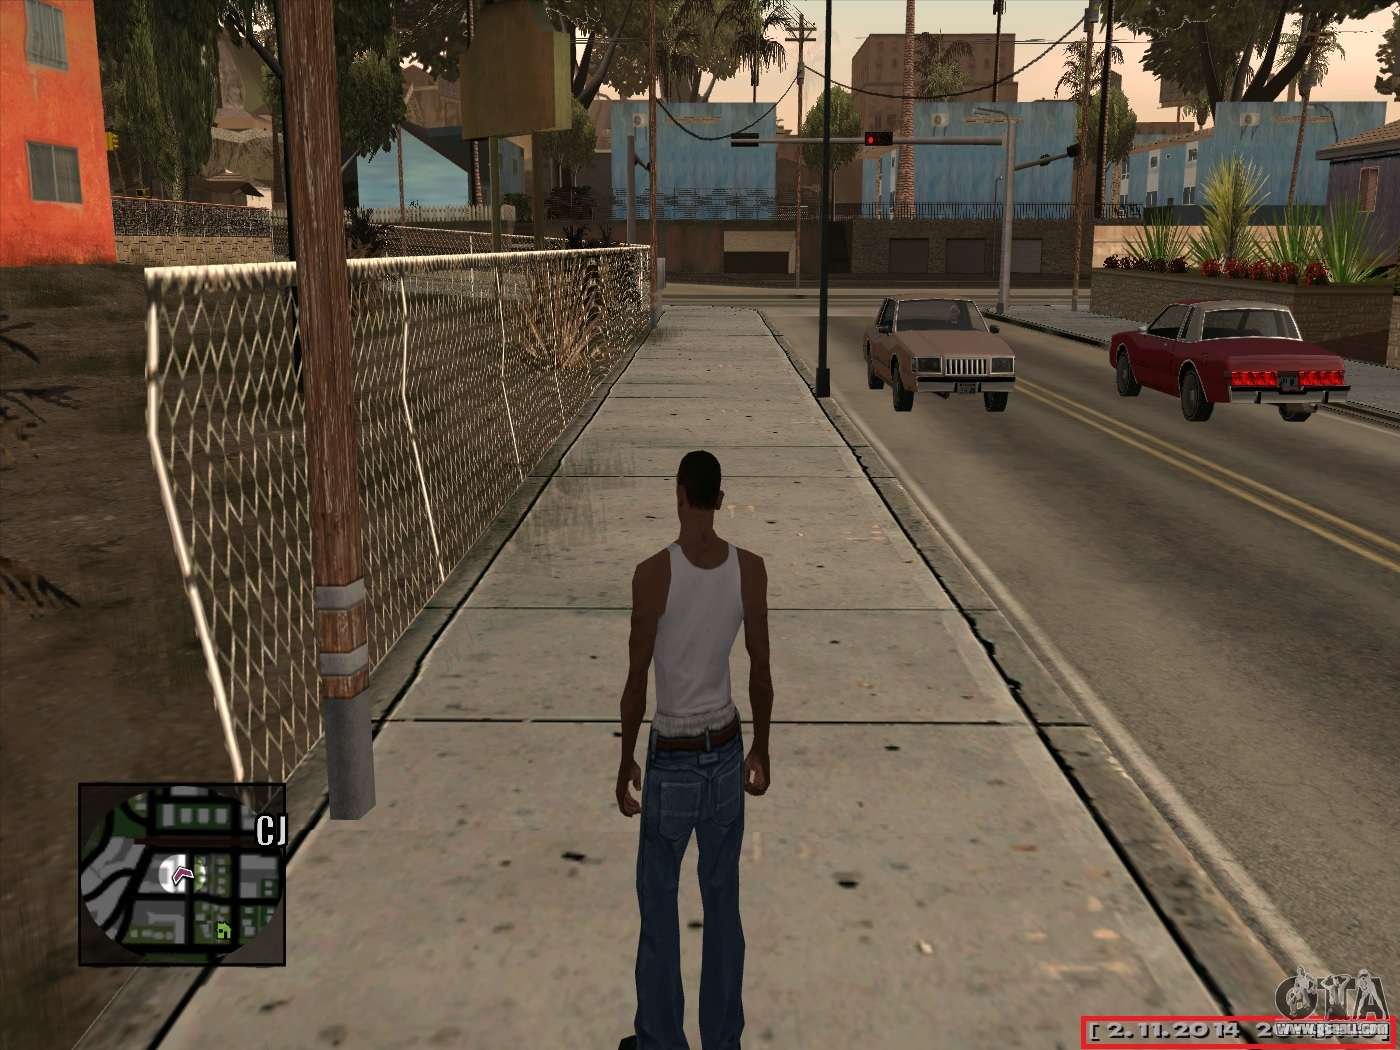 San andreas dating guide